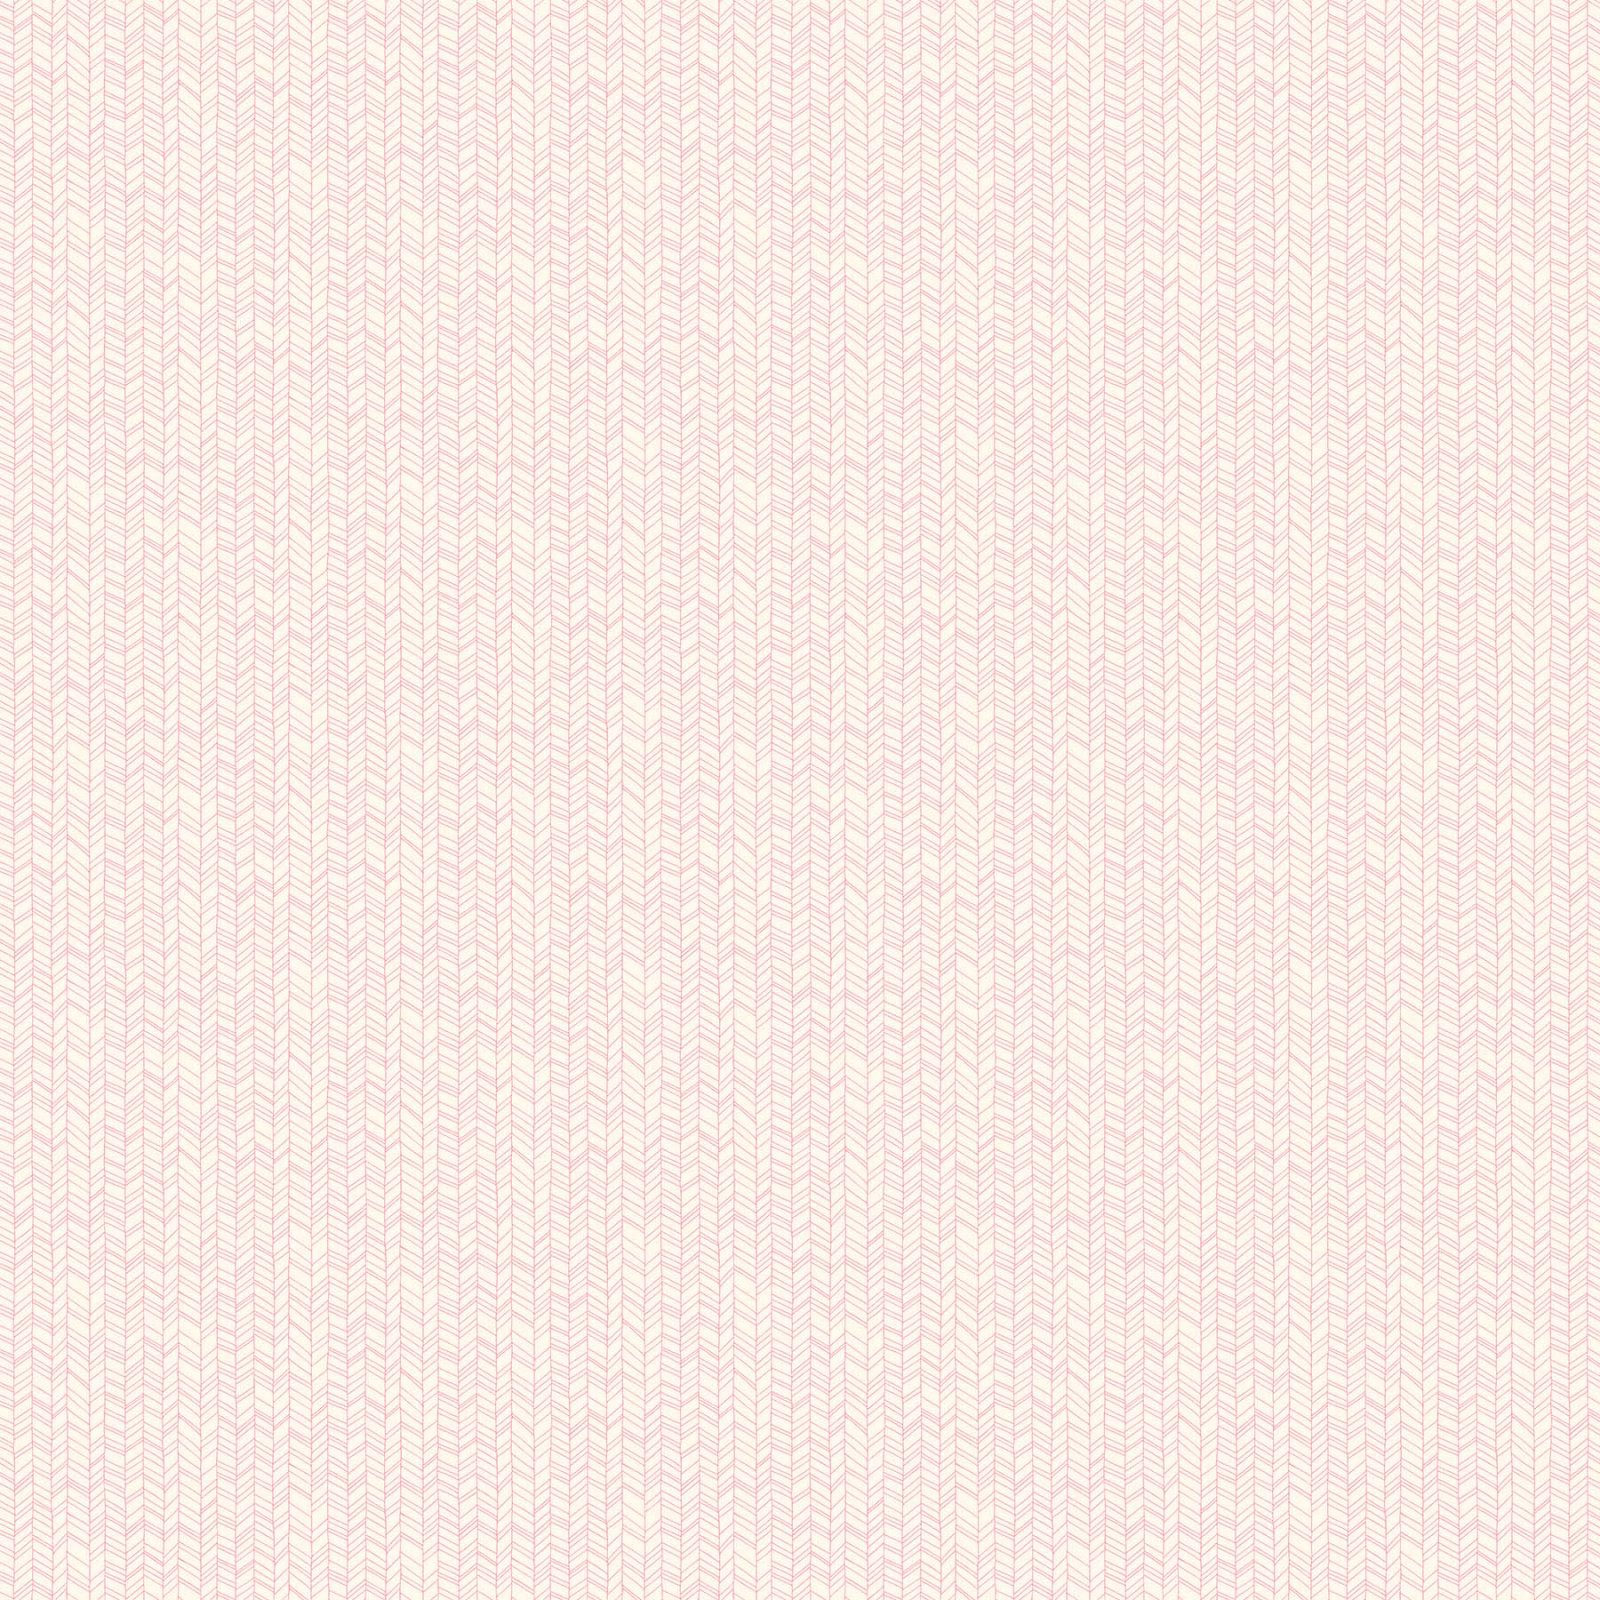 FIGO Fabrics - Mountain Meadows - Pink on White - 90007-21